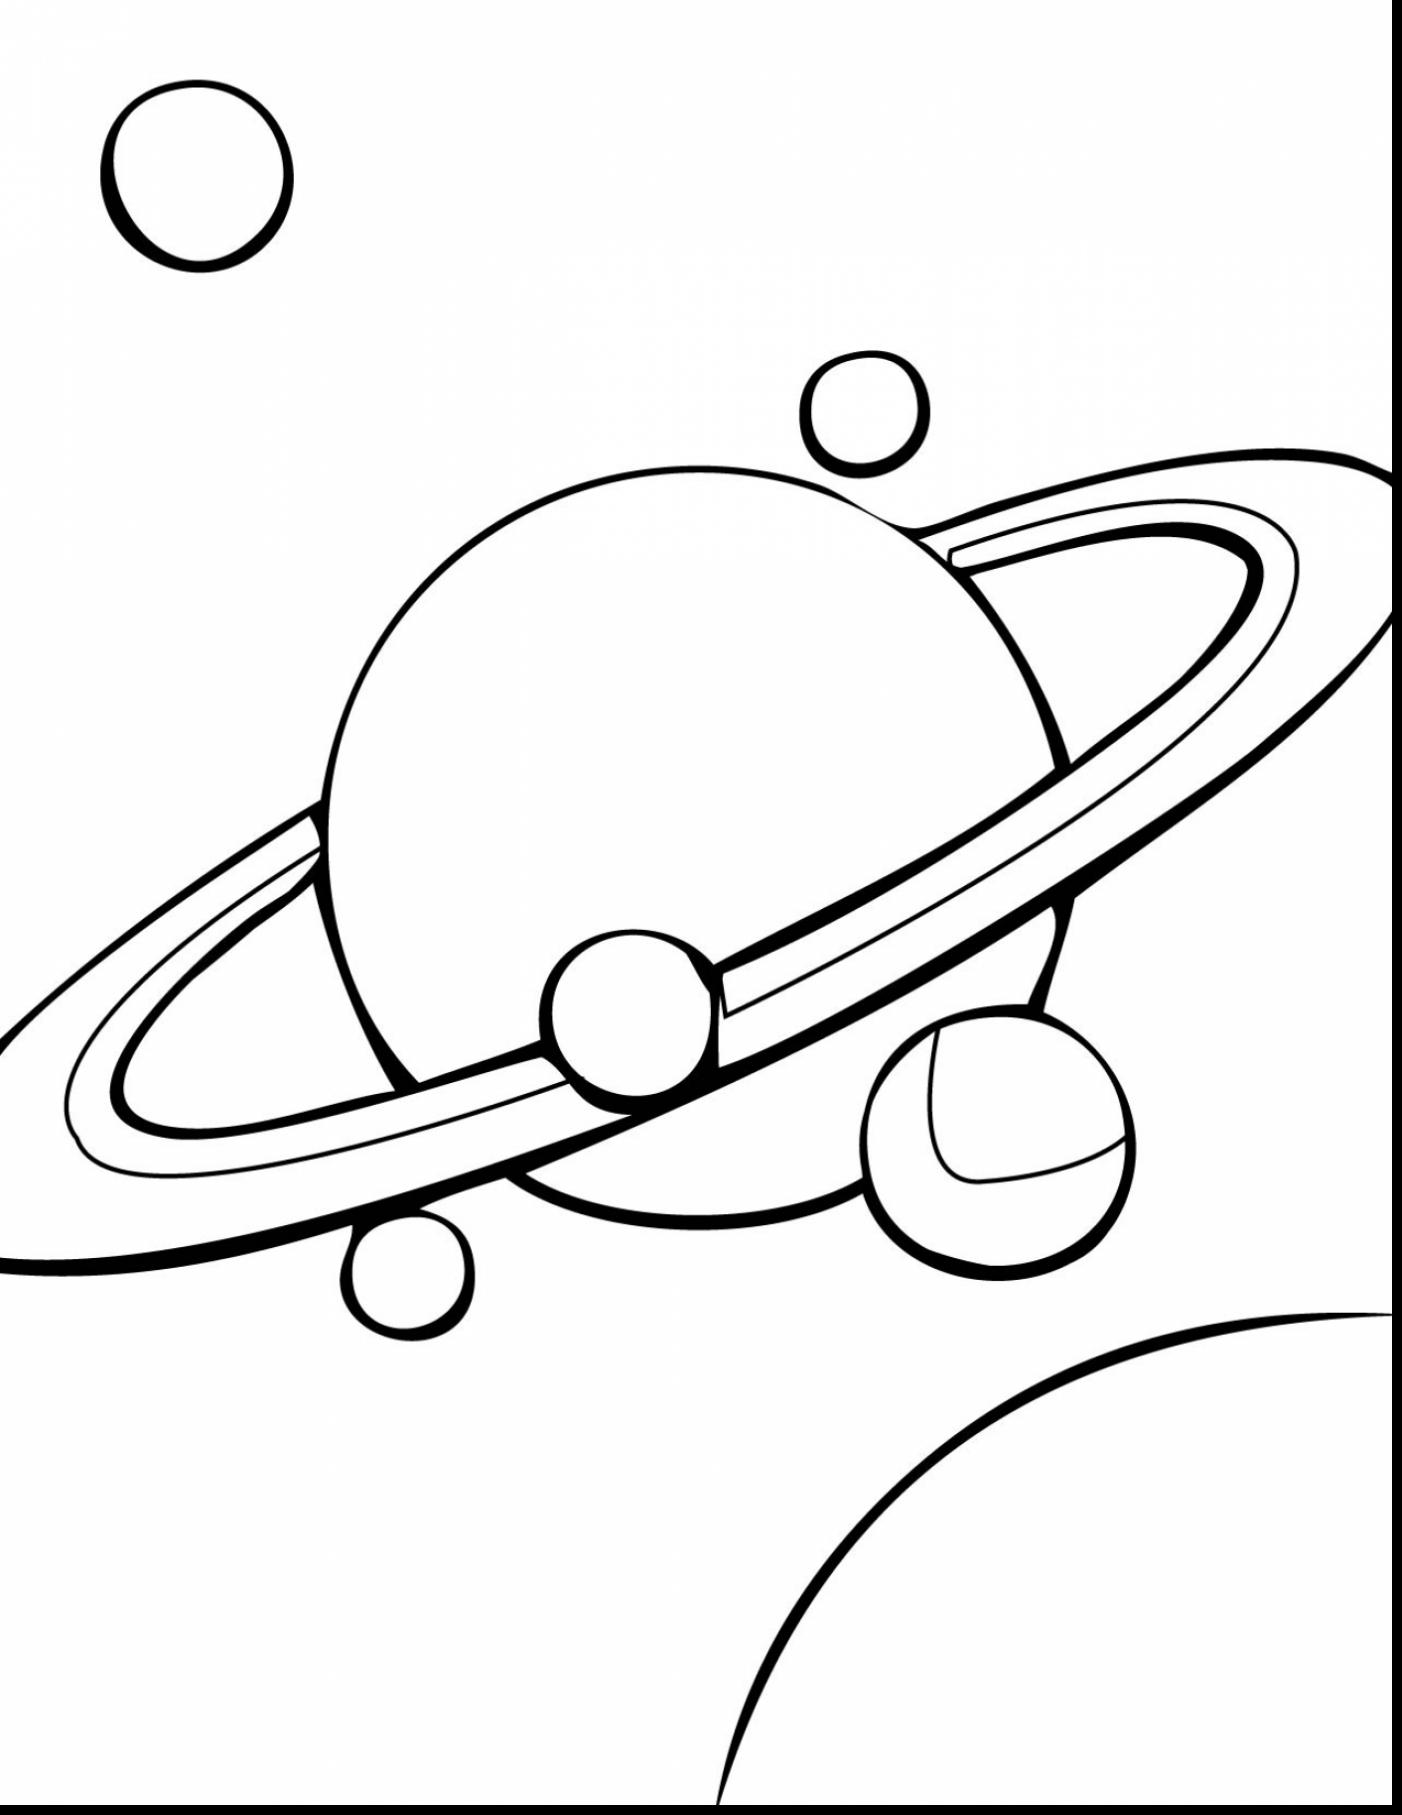 1402x1815 Great Pluto Planet Coloring Pages Printable With